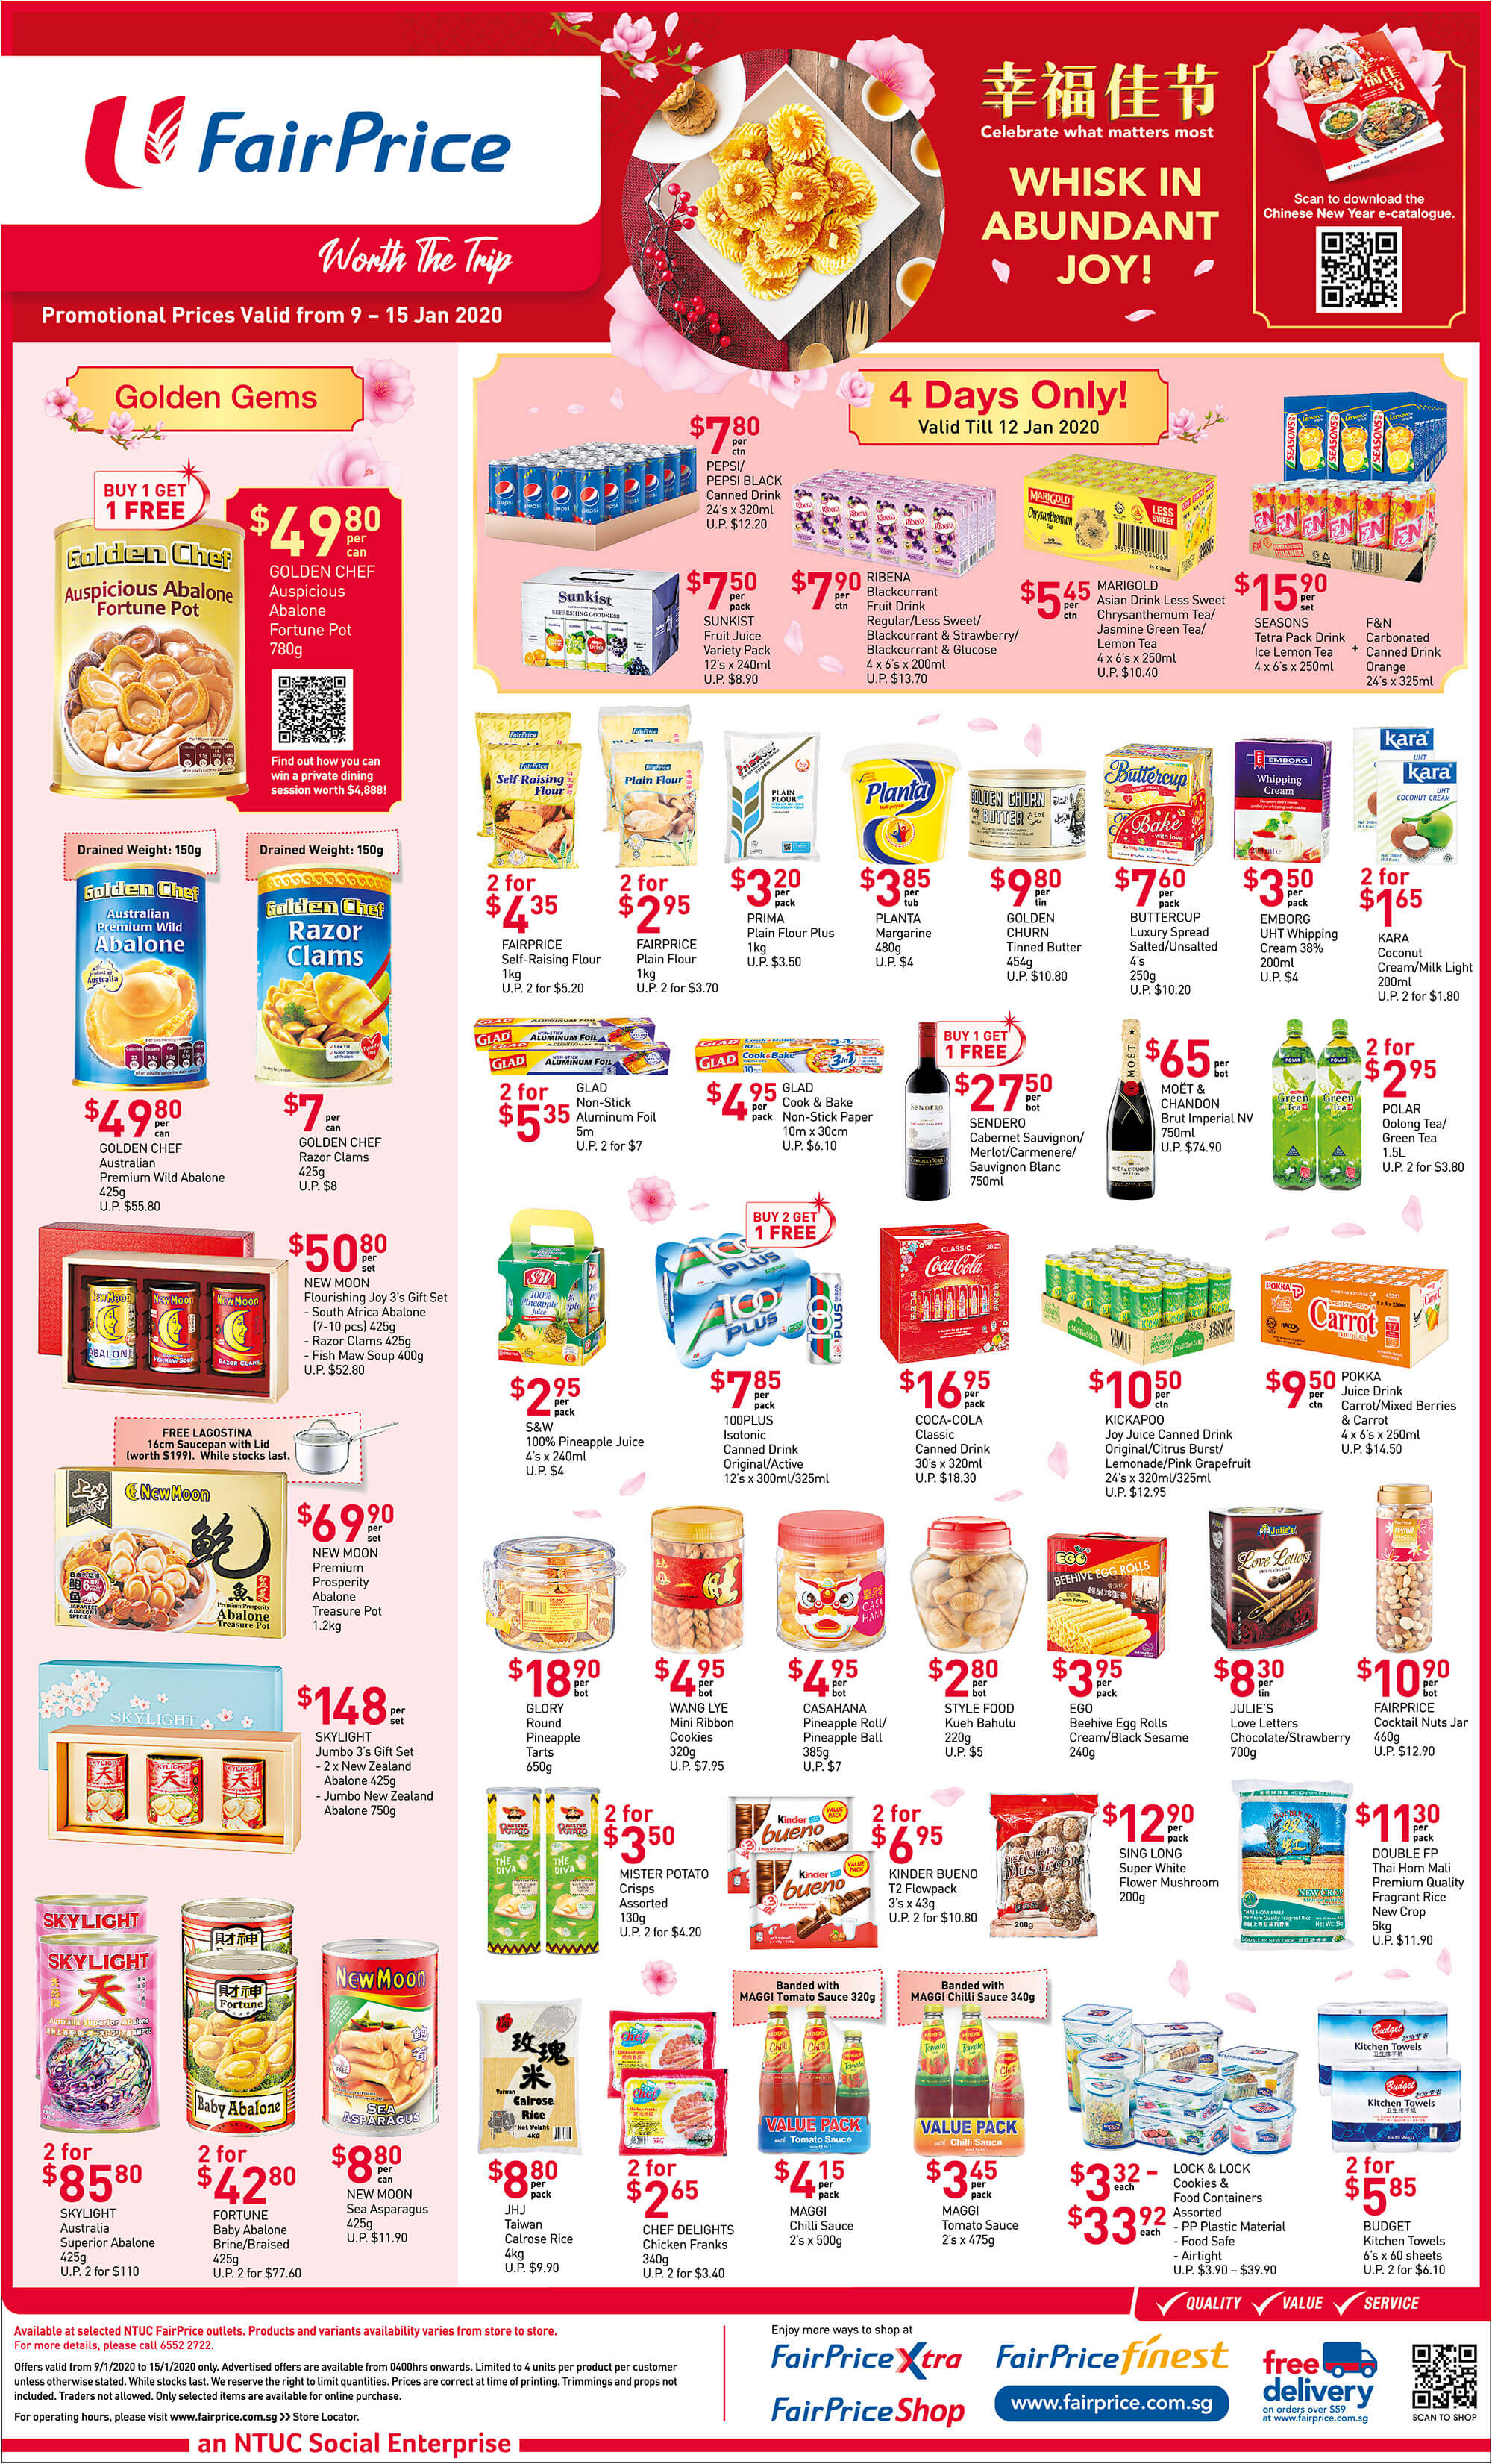 NTUC FairPrice SG Your Weekly Saver Promotions 9-15 Jan 2020 | Why Not Deals 1 & Promotions